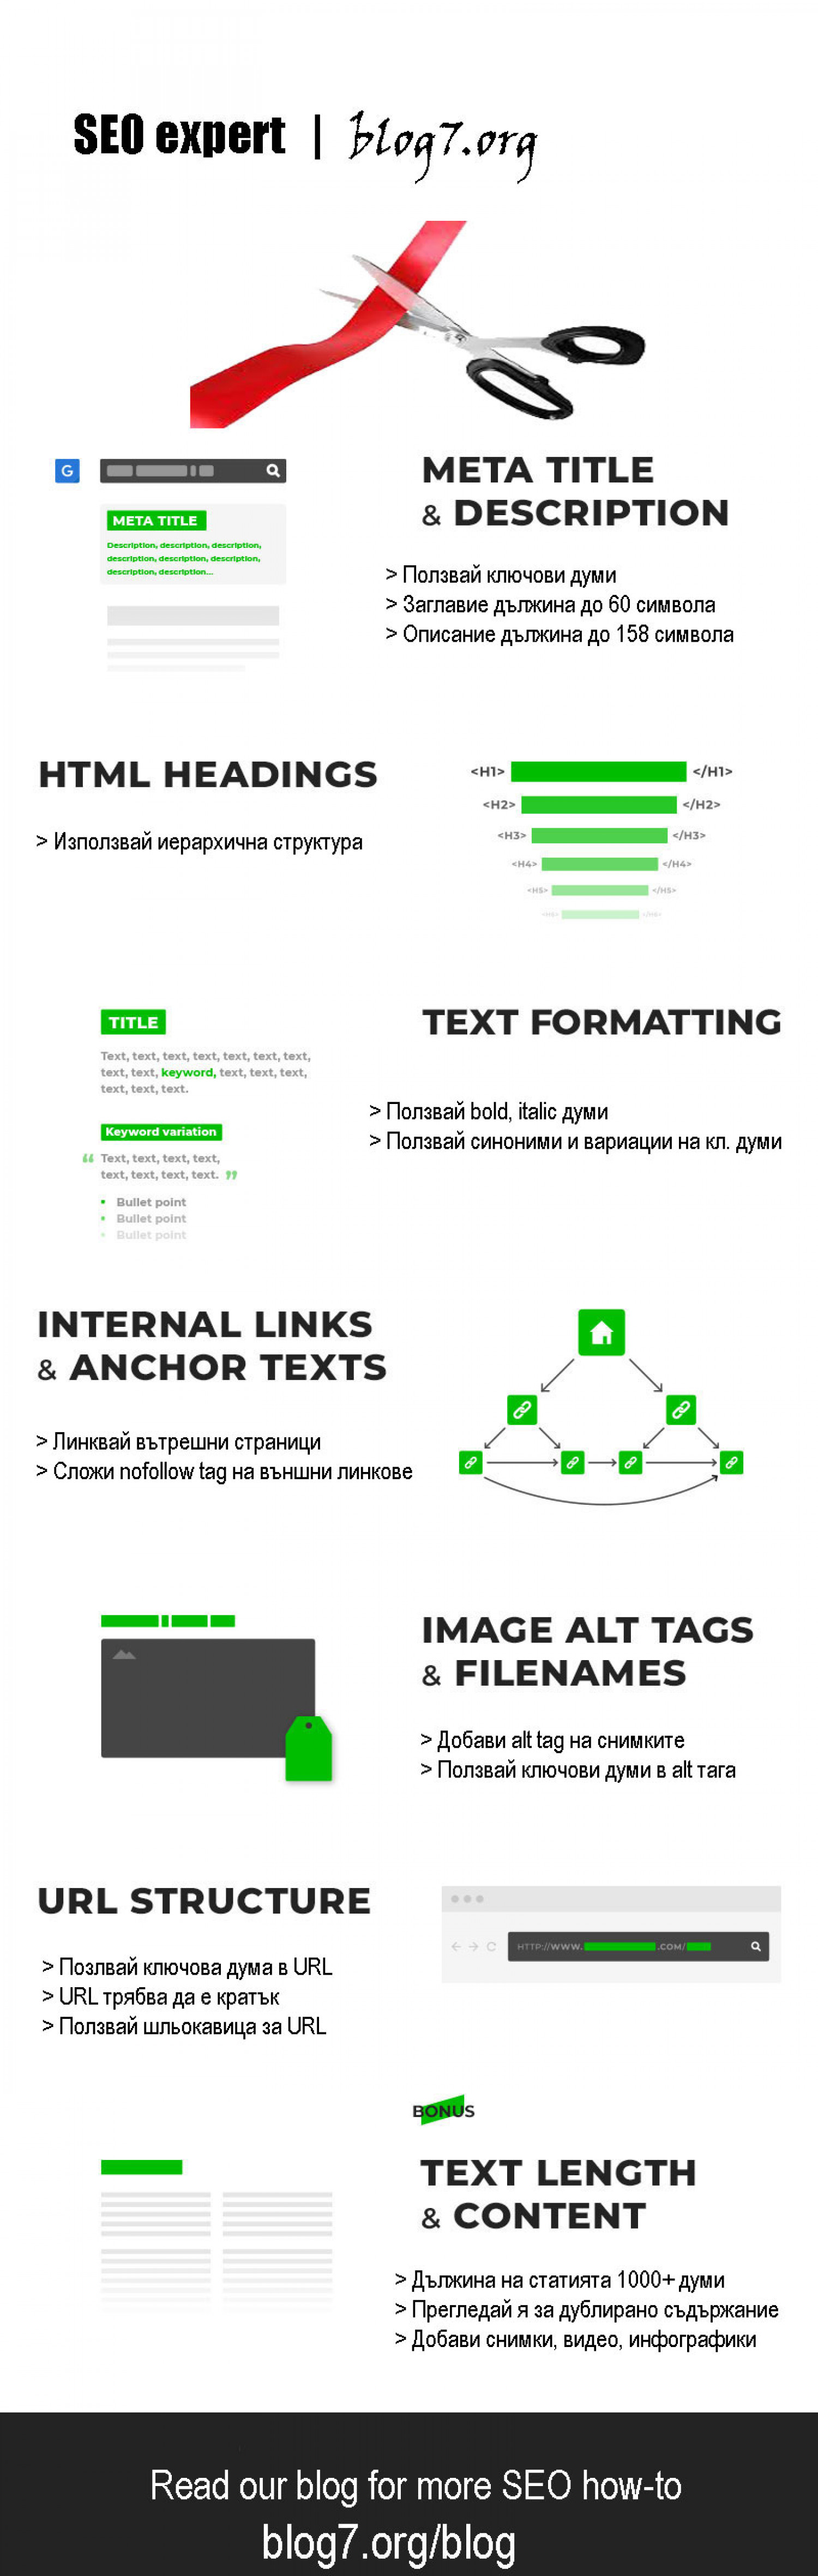 On-site SEO tips Infographic